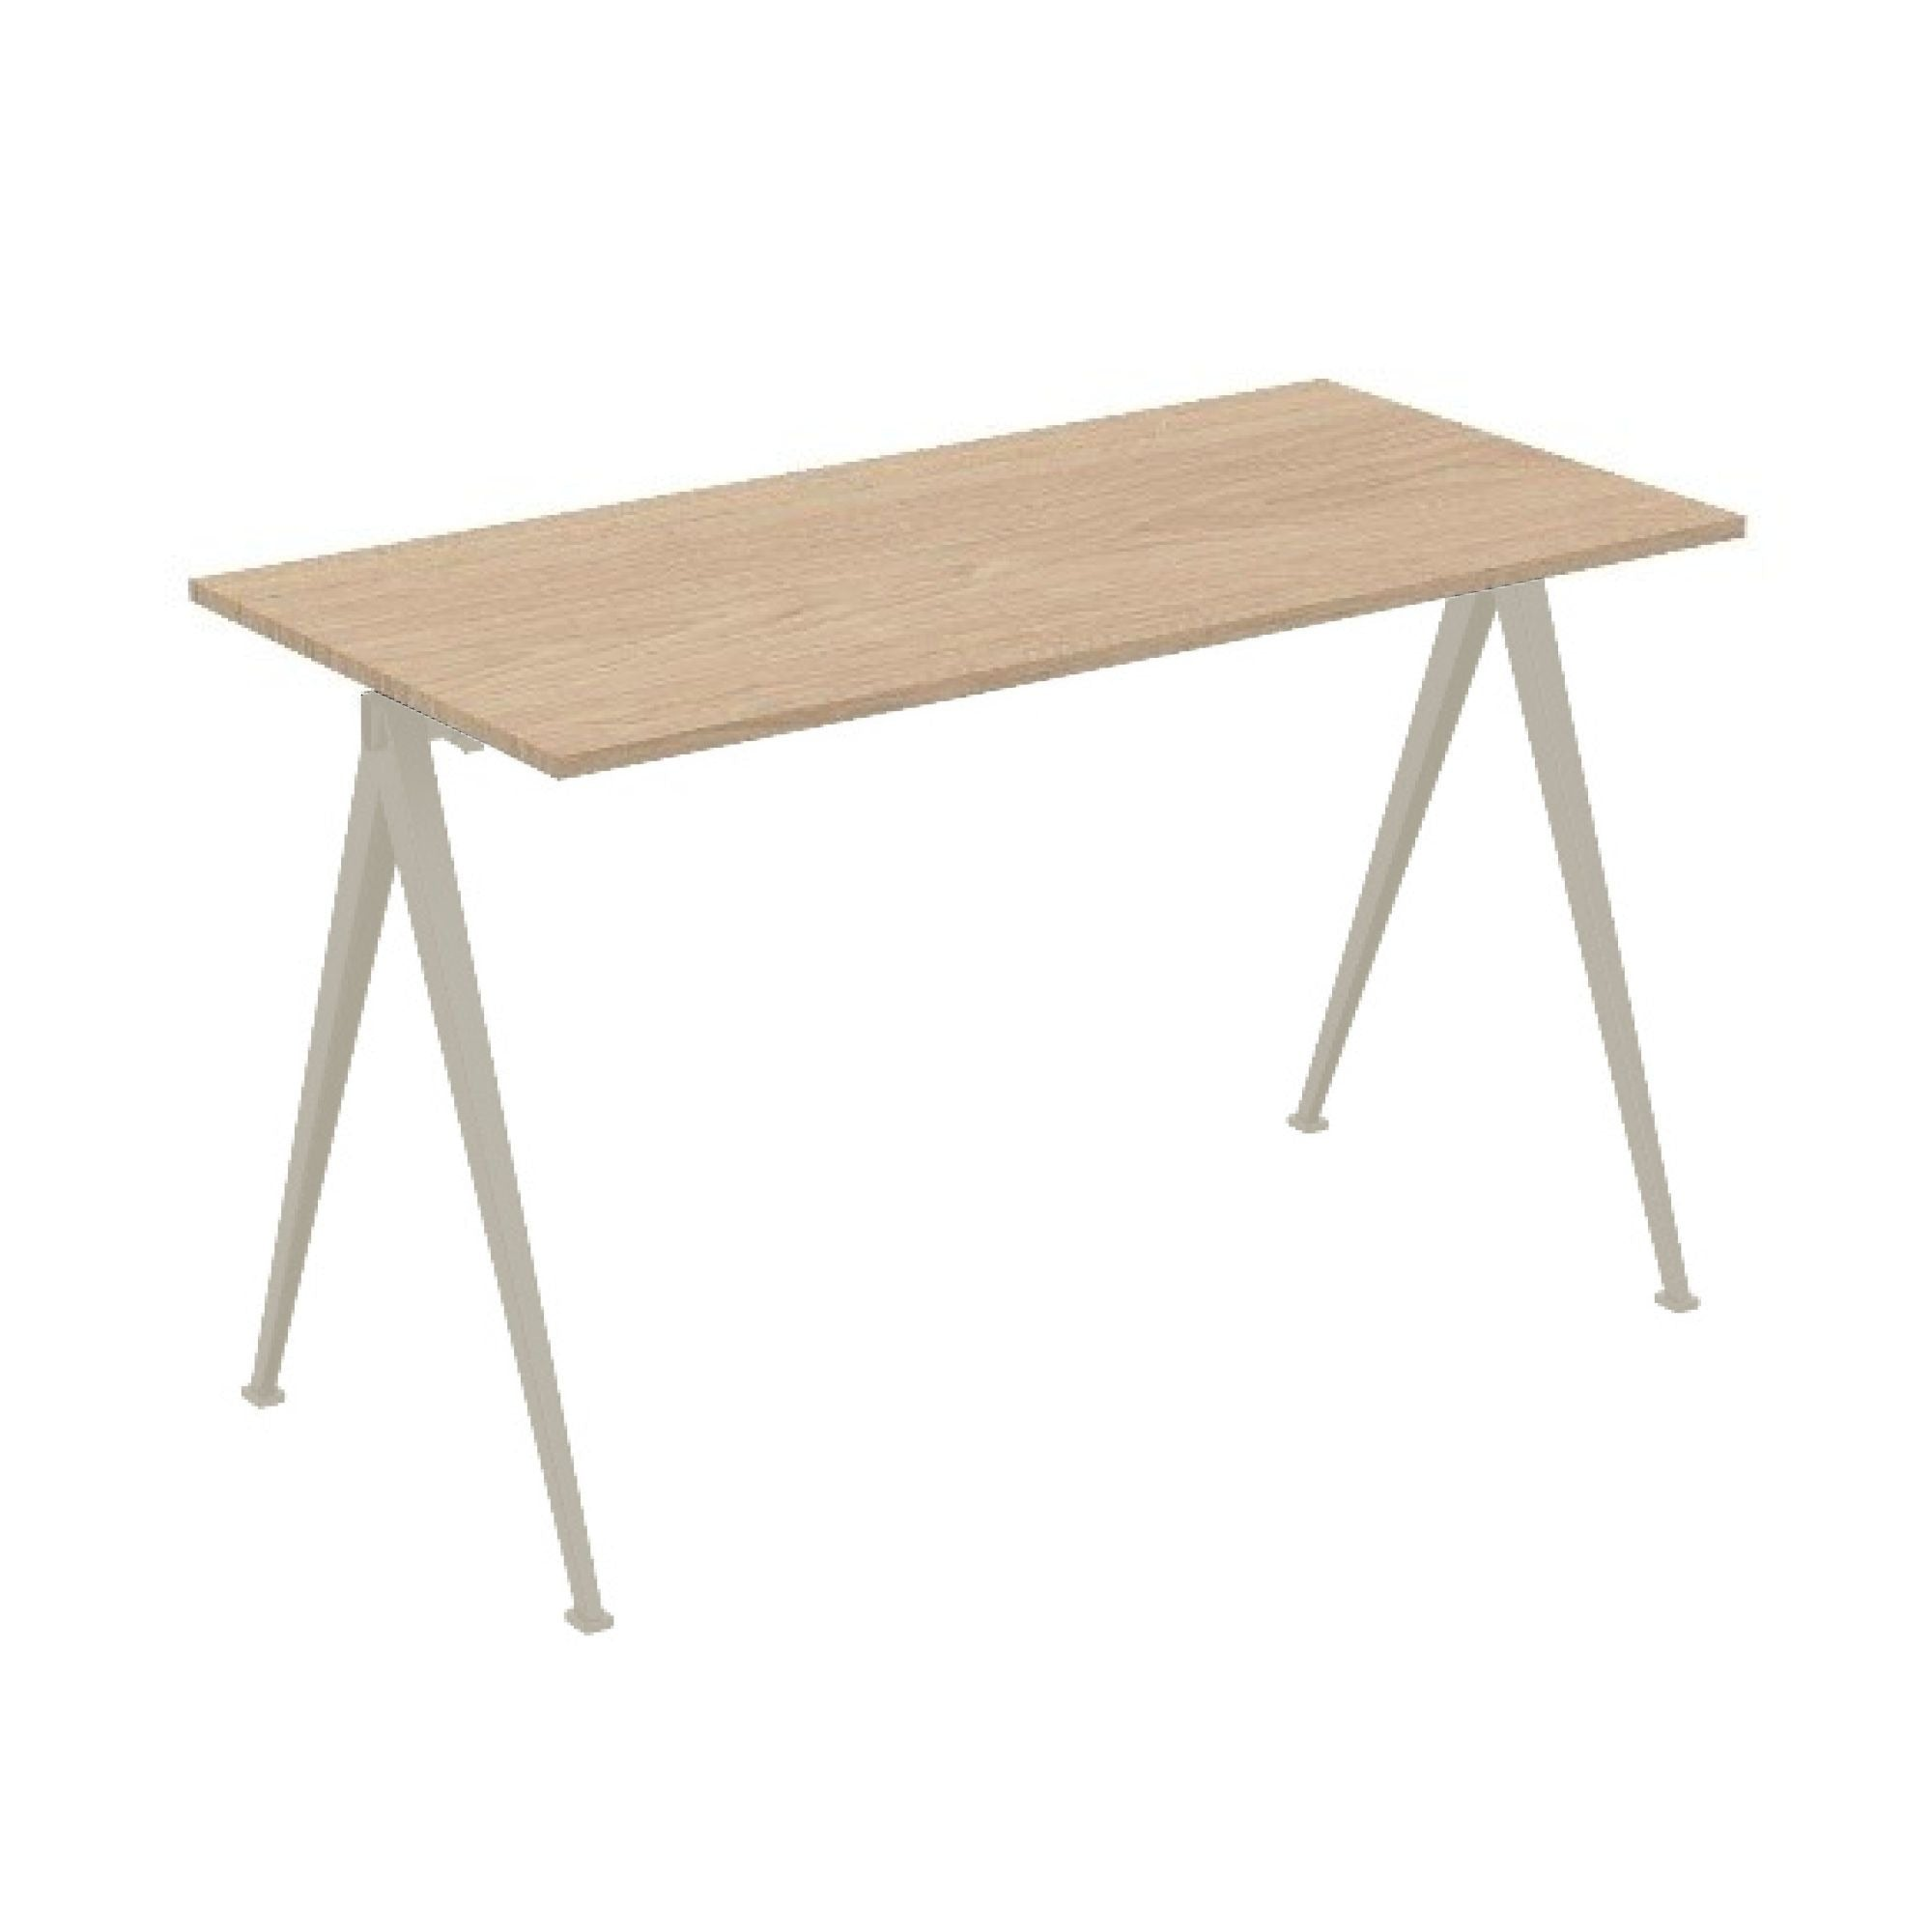 Hay Pyramid Desk 120x60 , Clear Lacquered Oak/Beige